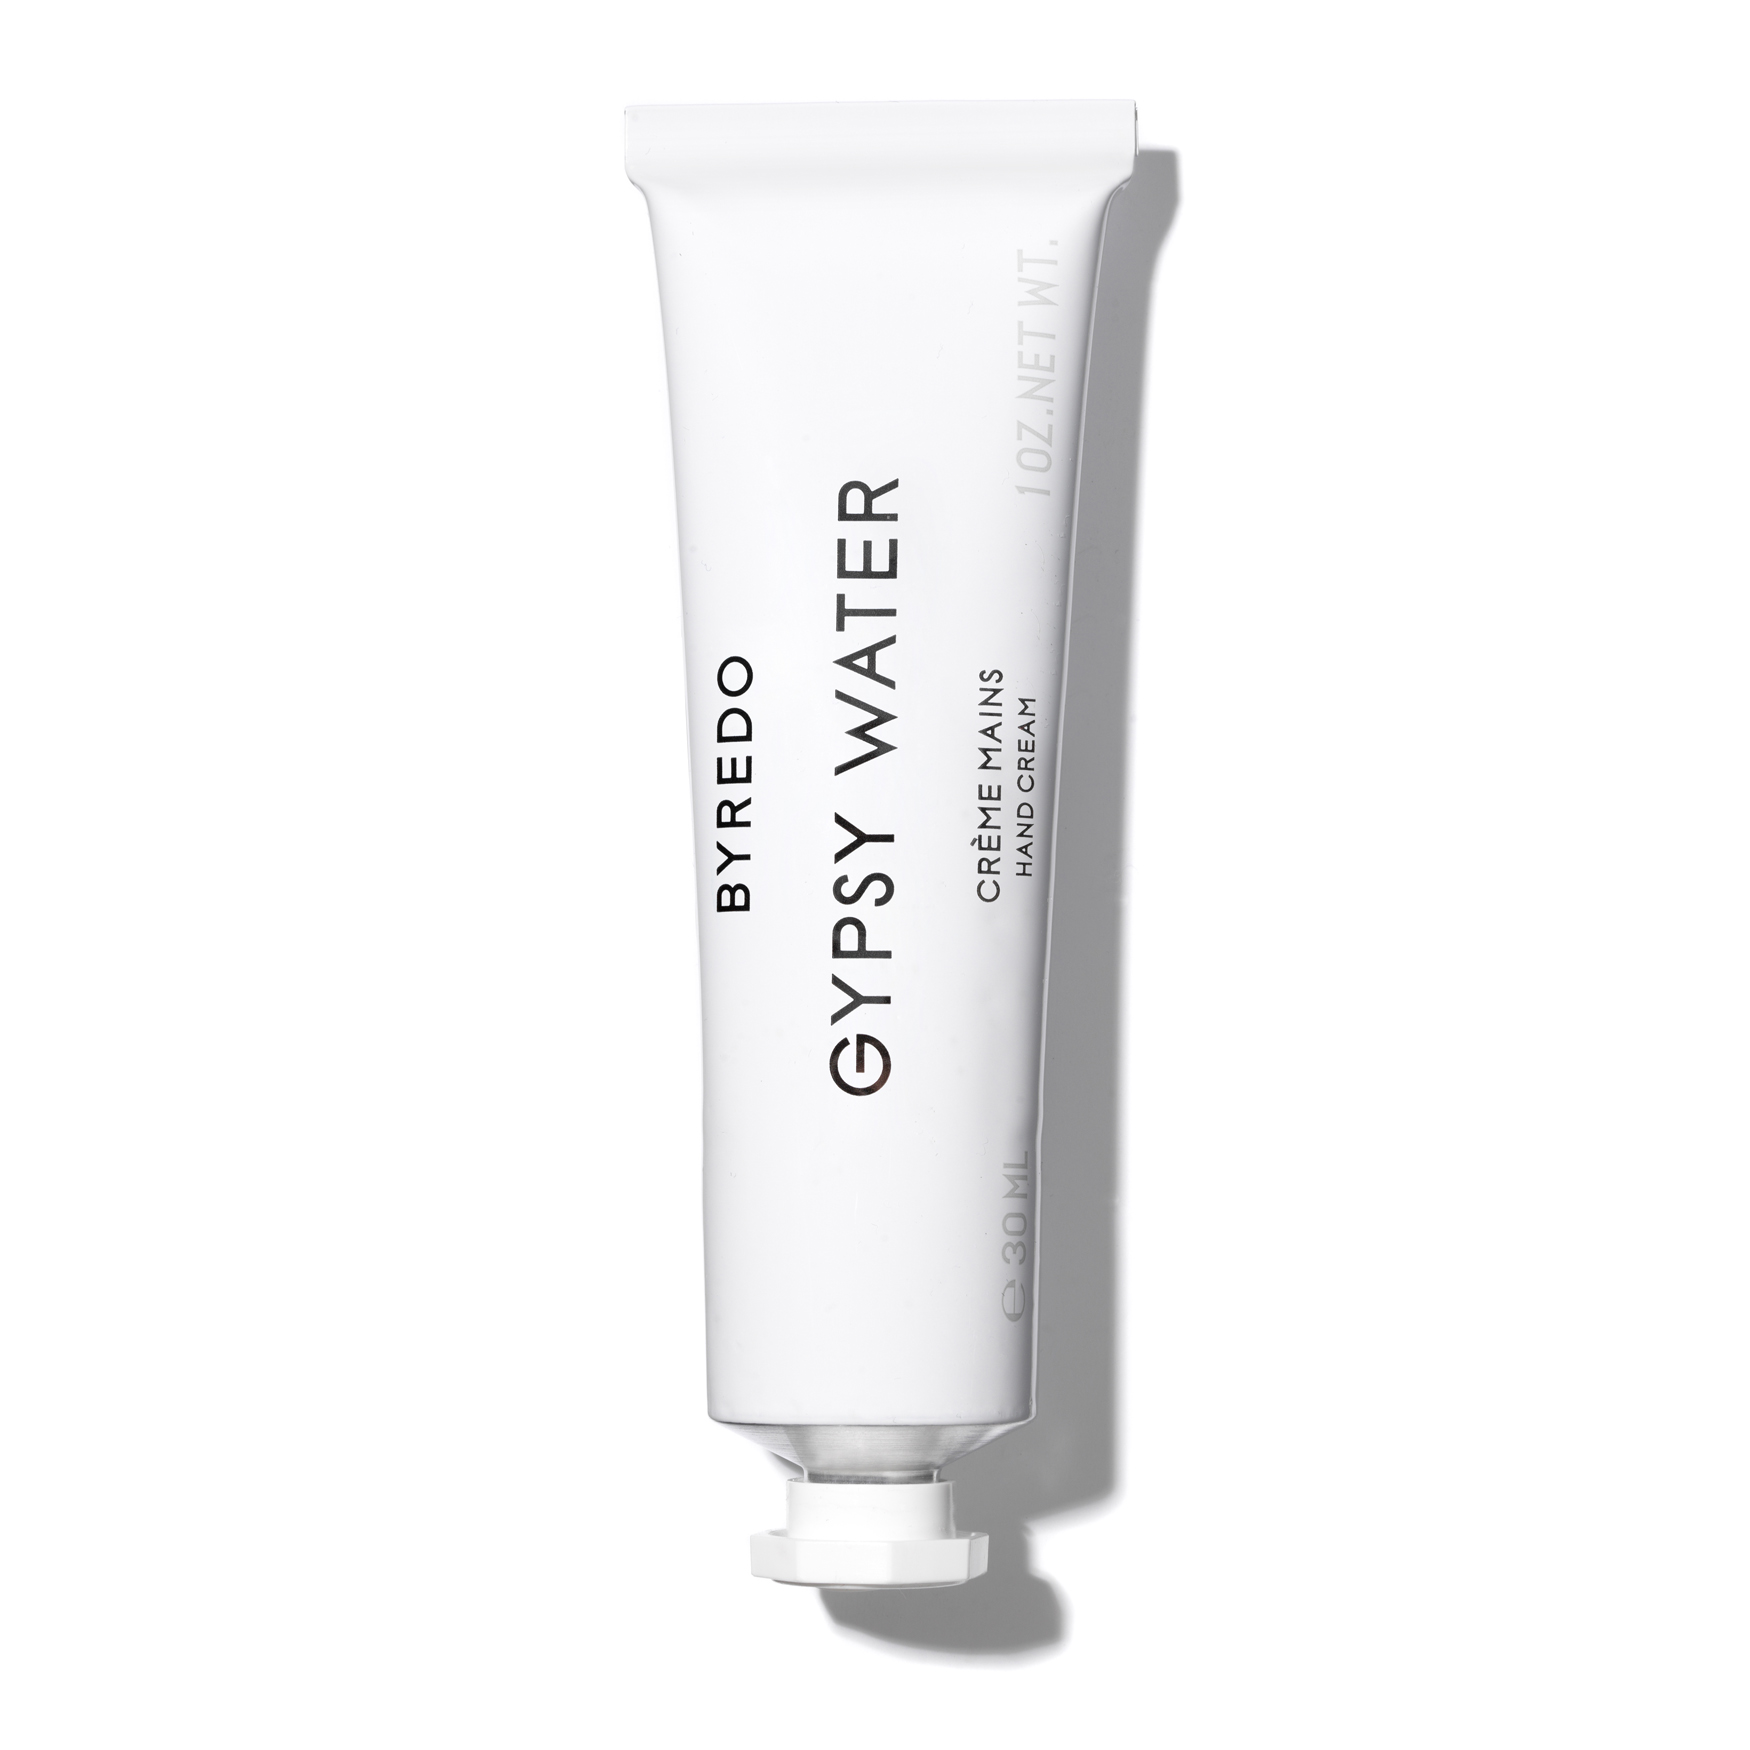 Gypsy Water Hand Cream Travel Size, , large